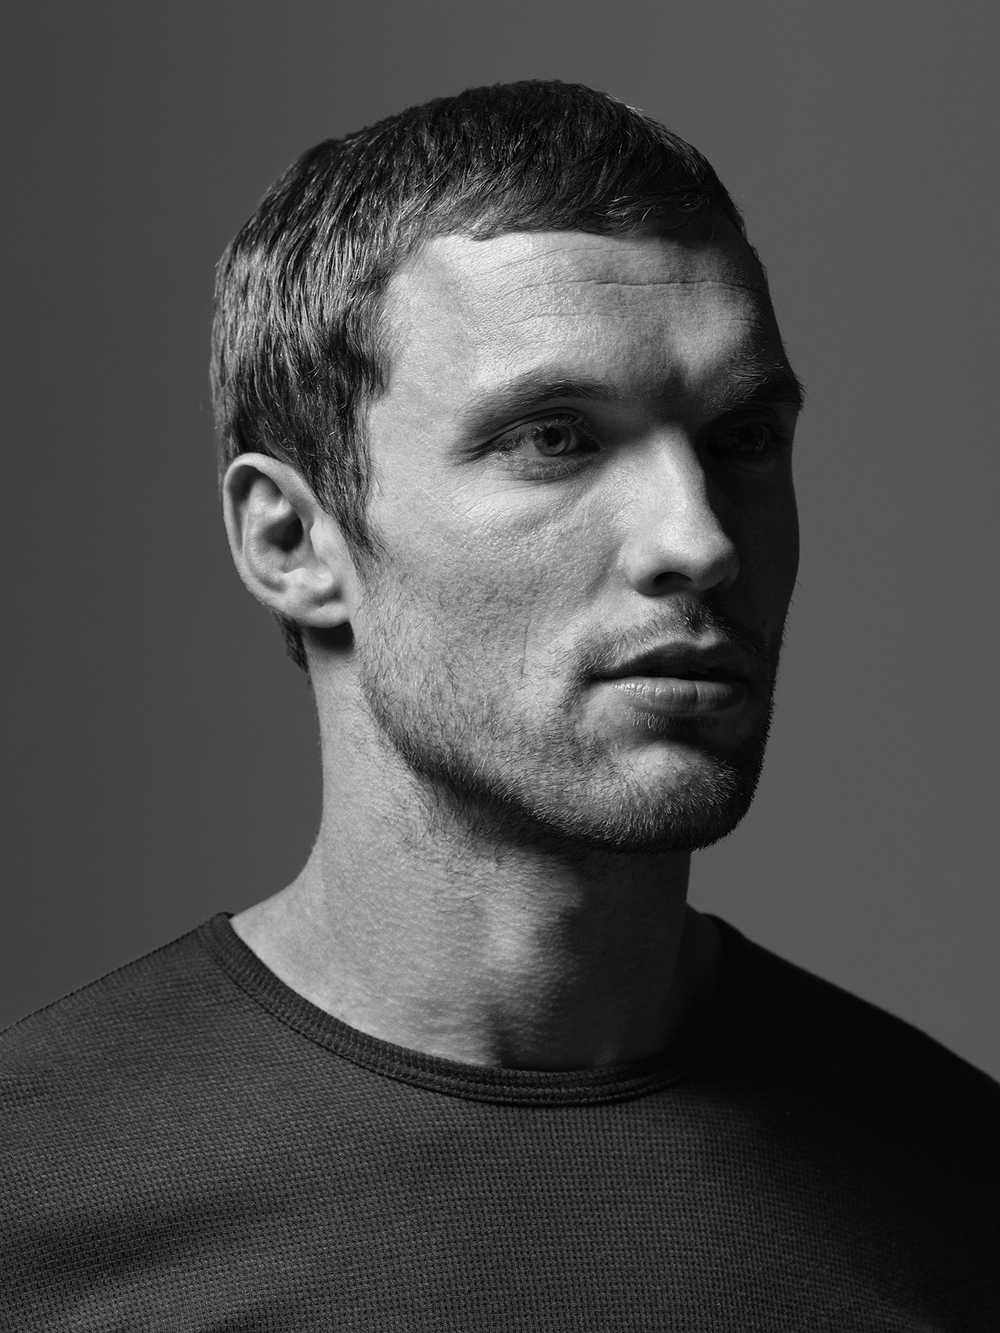 Ed Skrein – Actor